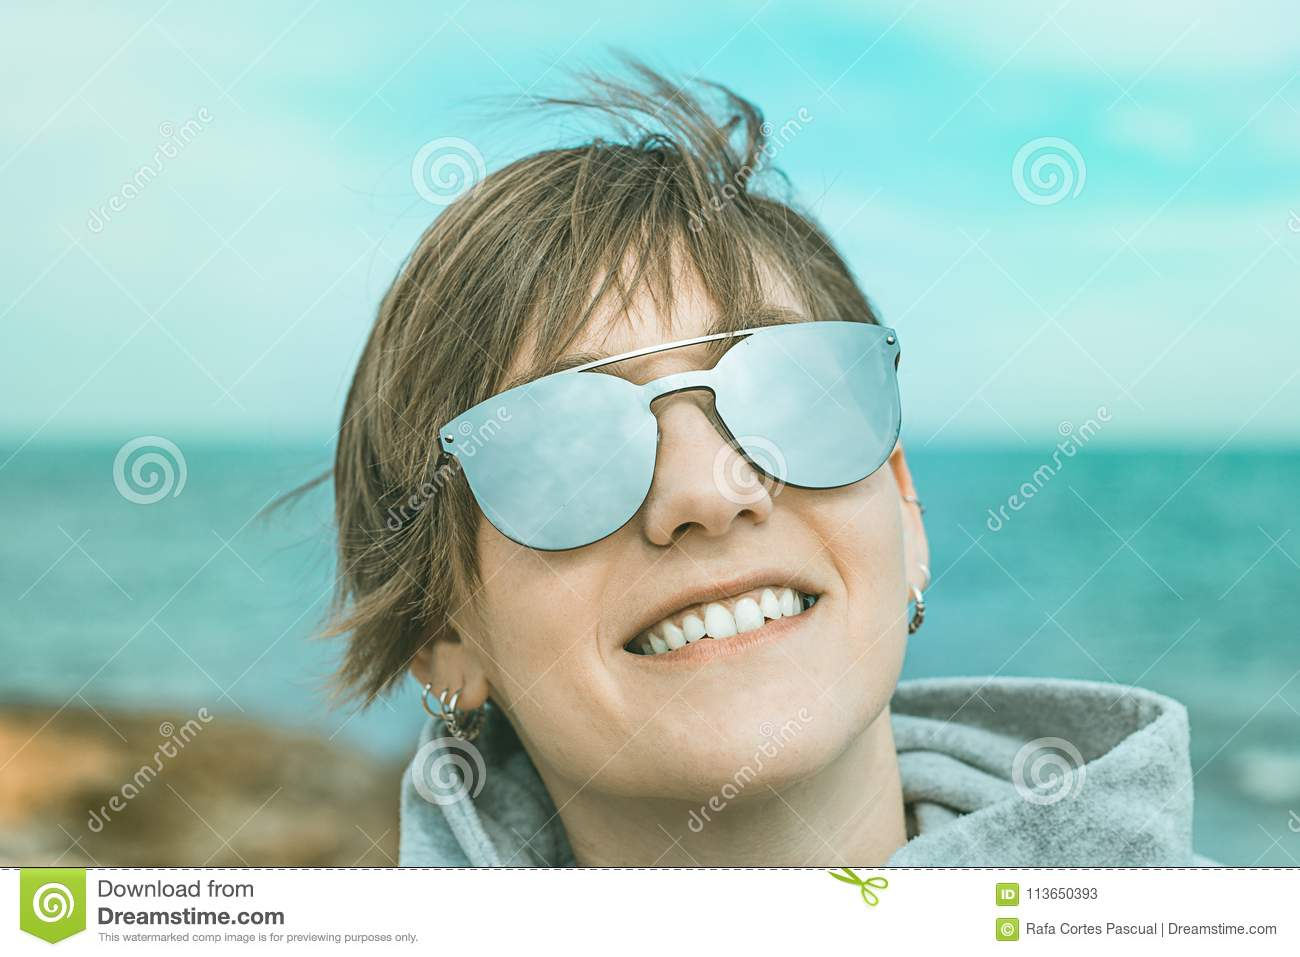 Portrait of a normal girl with smiling sunglasses on the beach.